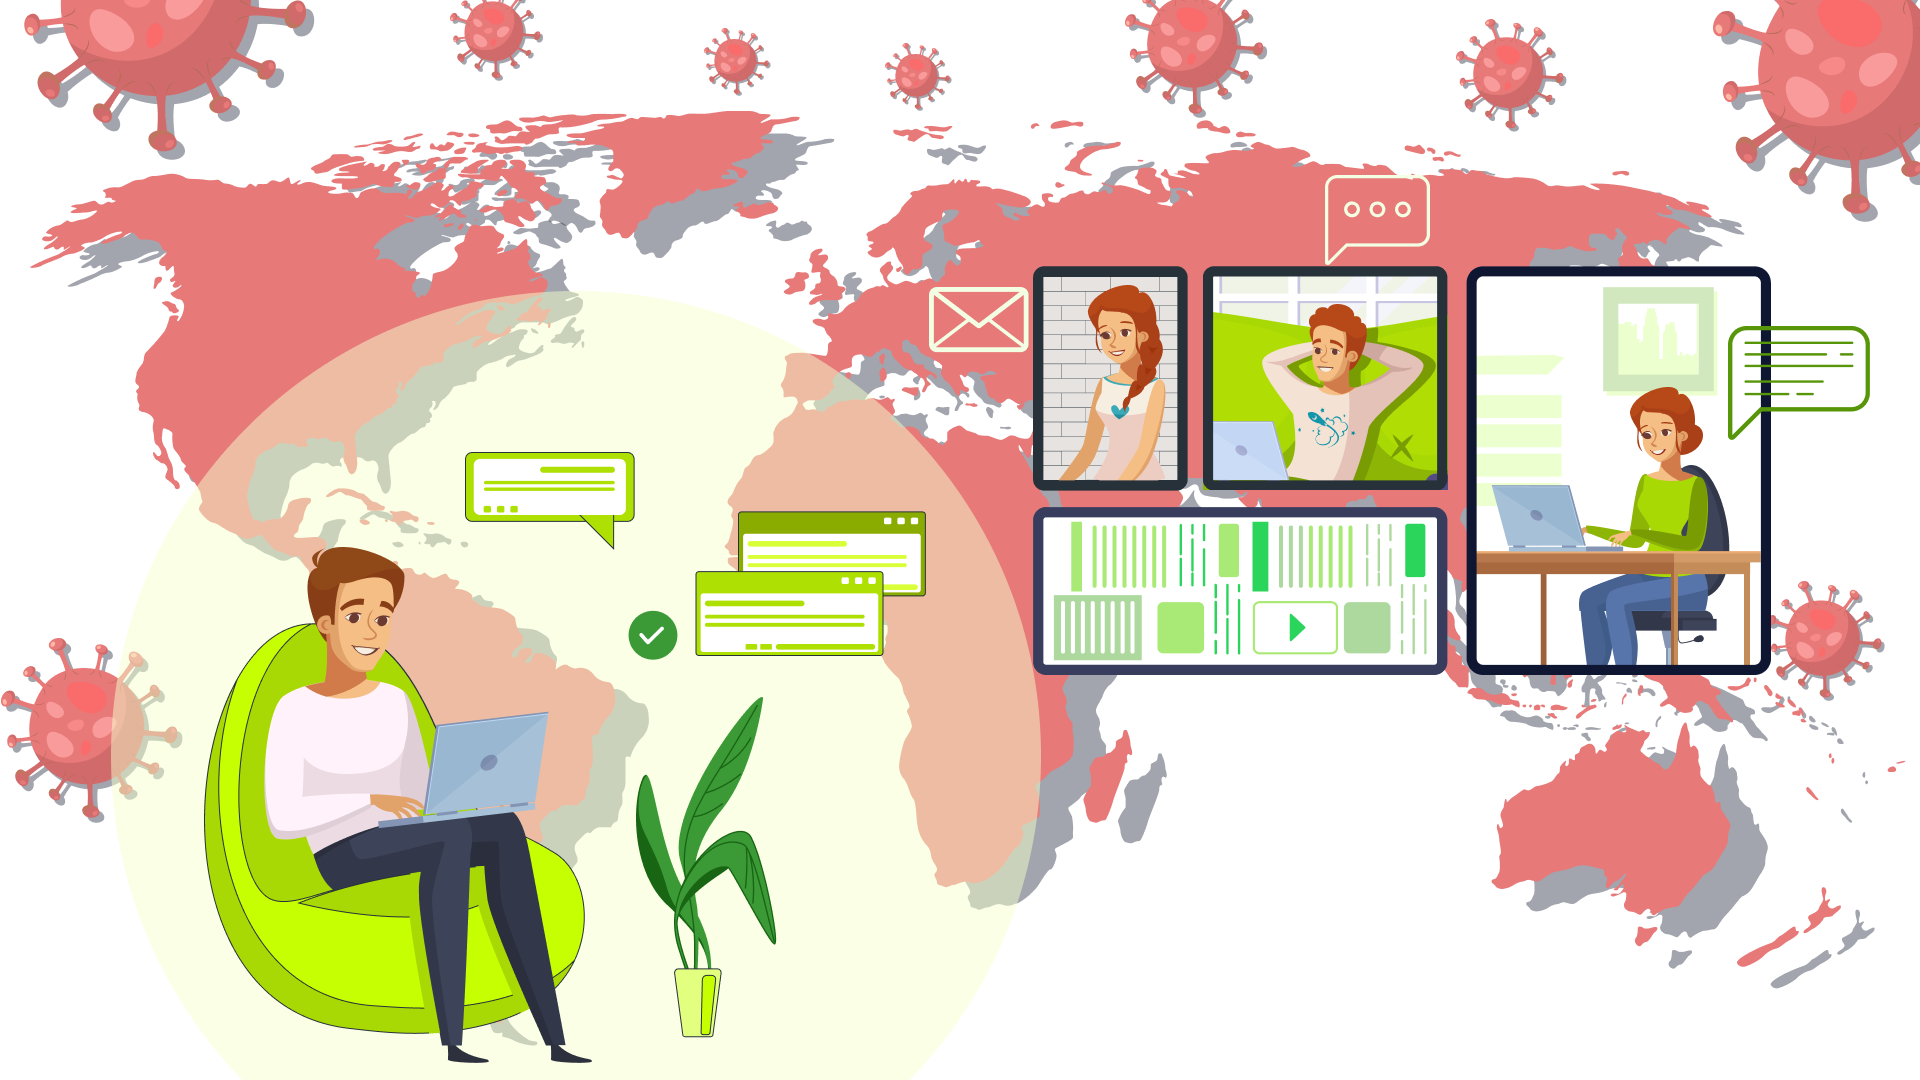 Online collaboration tools allow maintaining momentum in business.